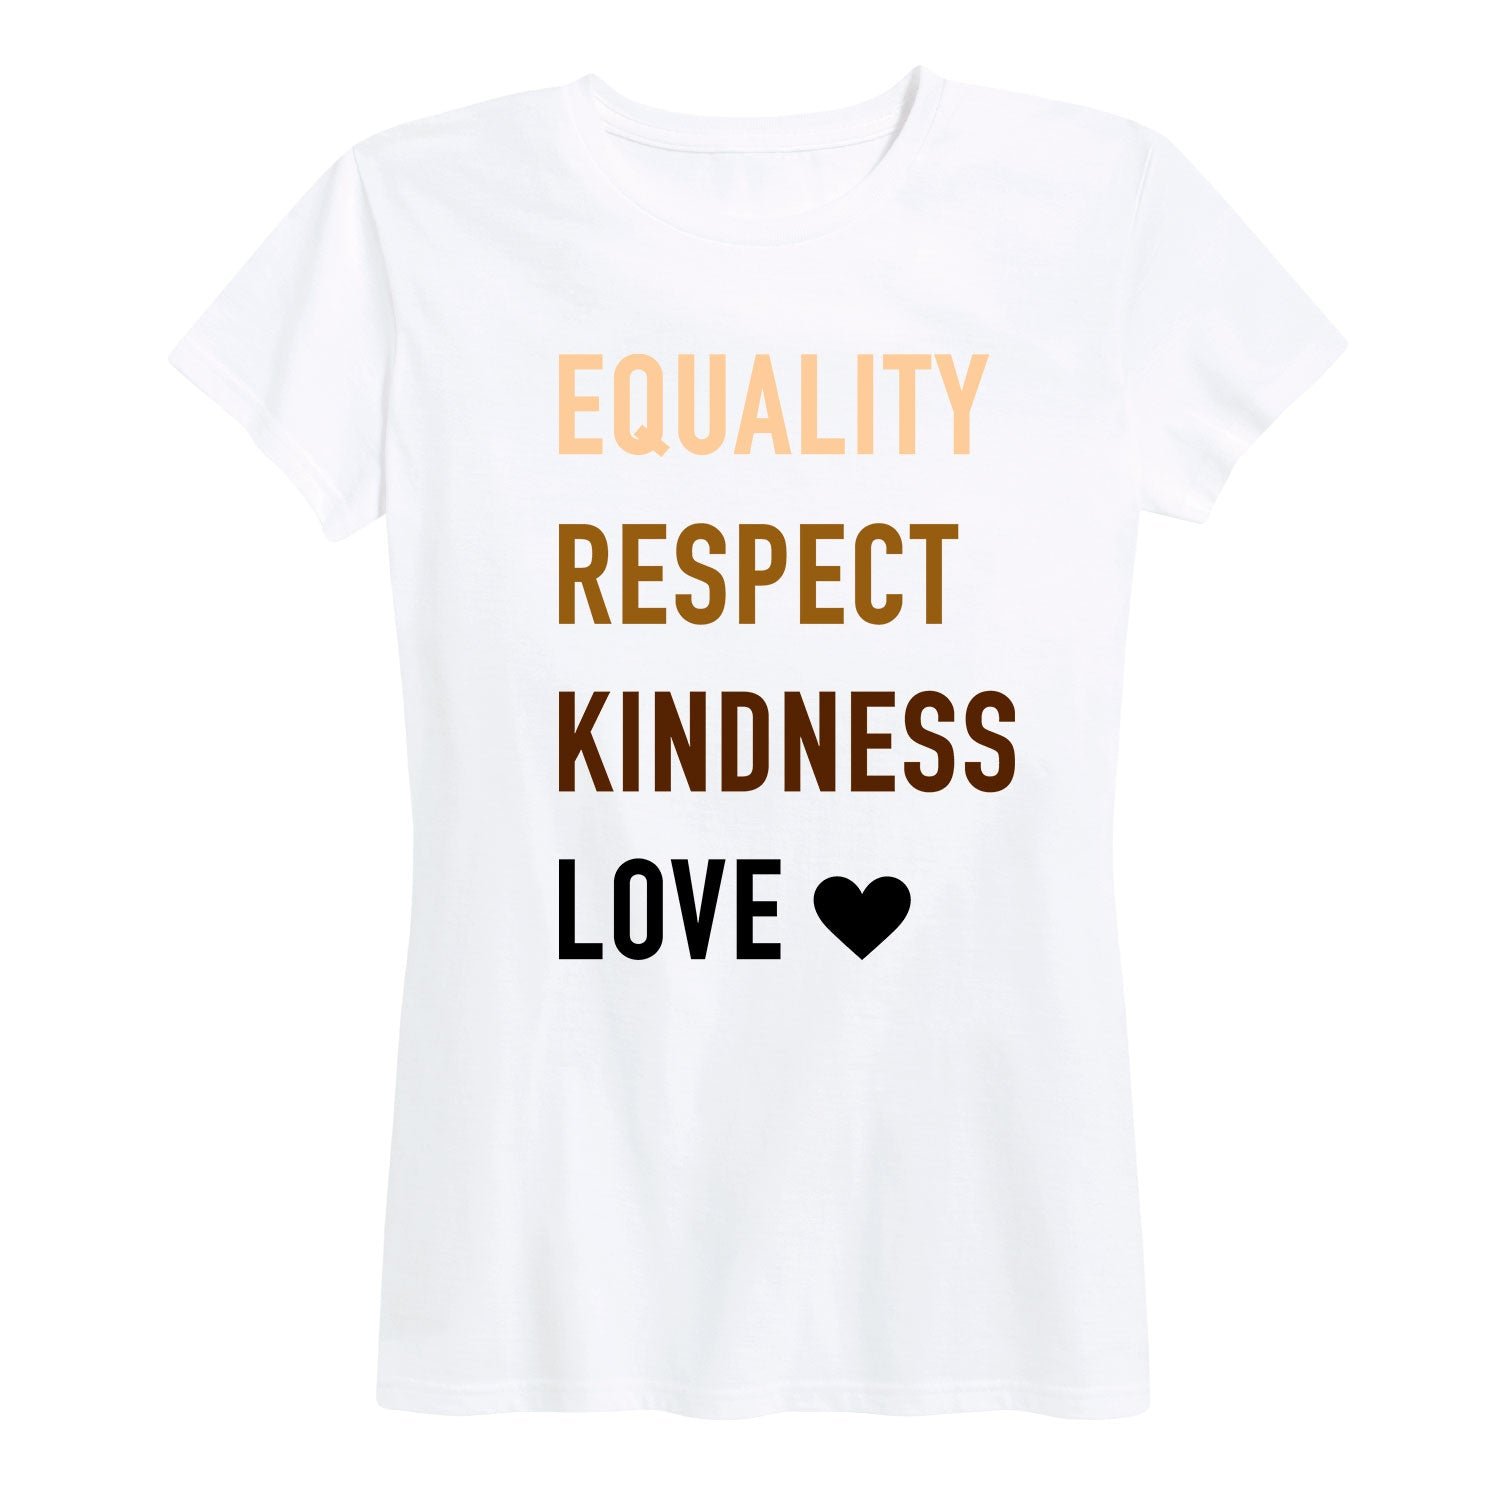 Equality Respect Kindness Love - Women's Short Sleeve T-Shirt